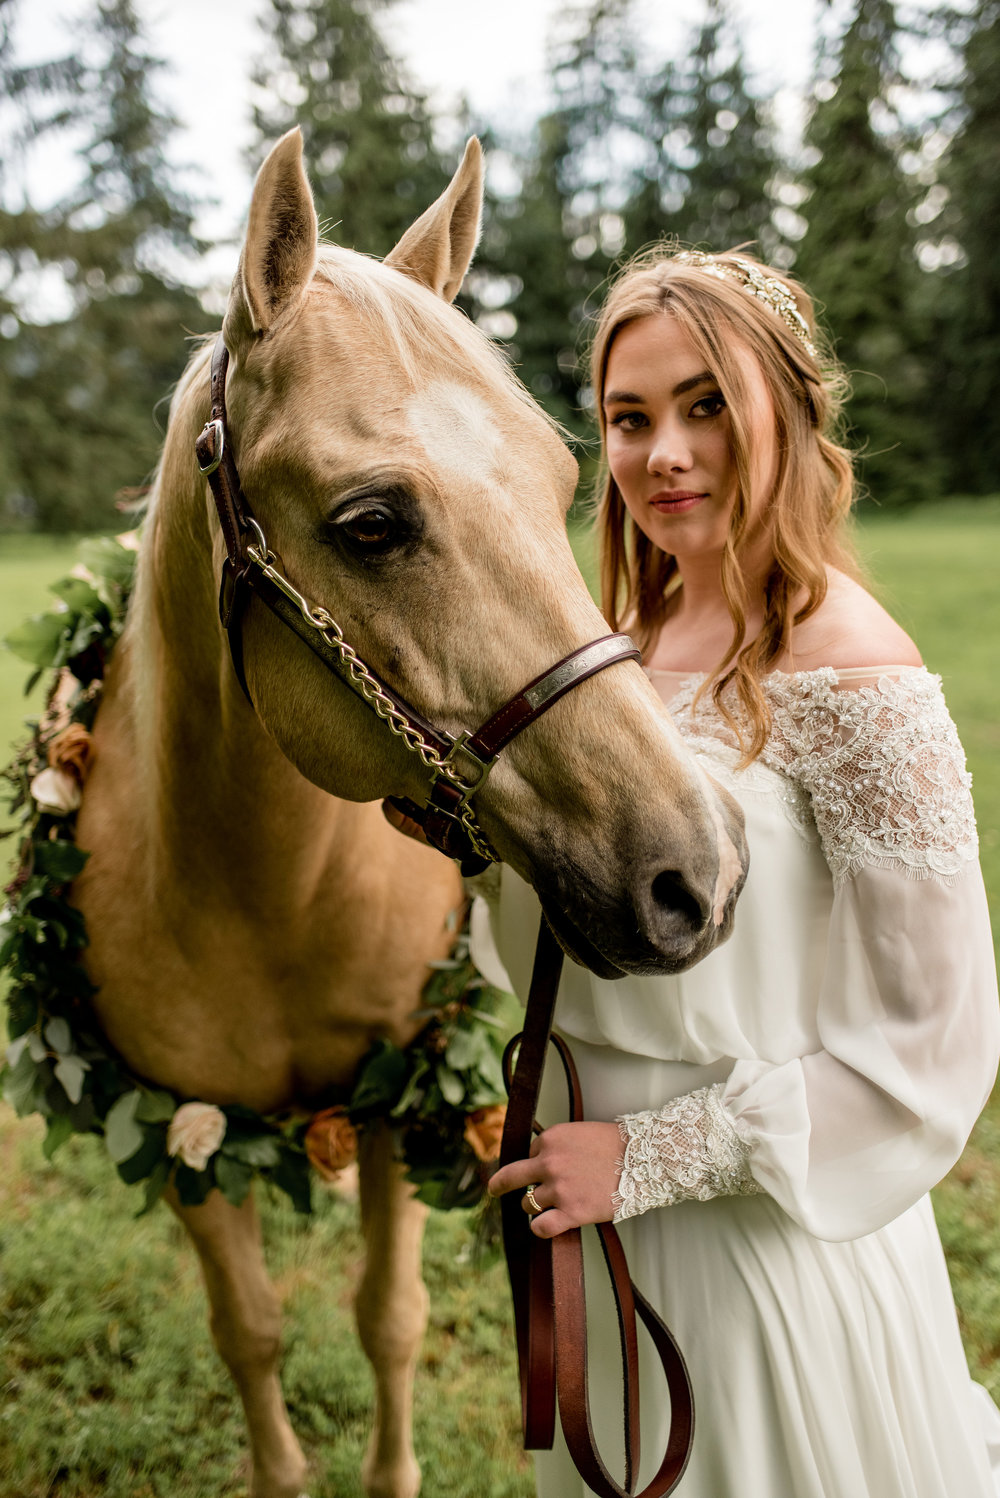 horse and bride misty.jpg